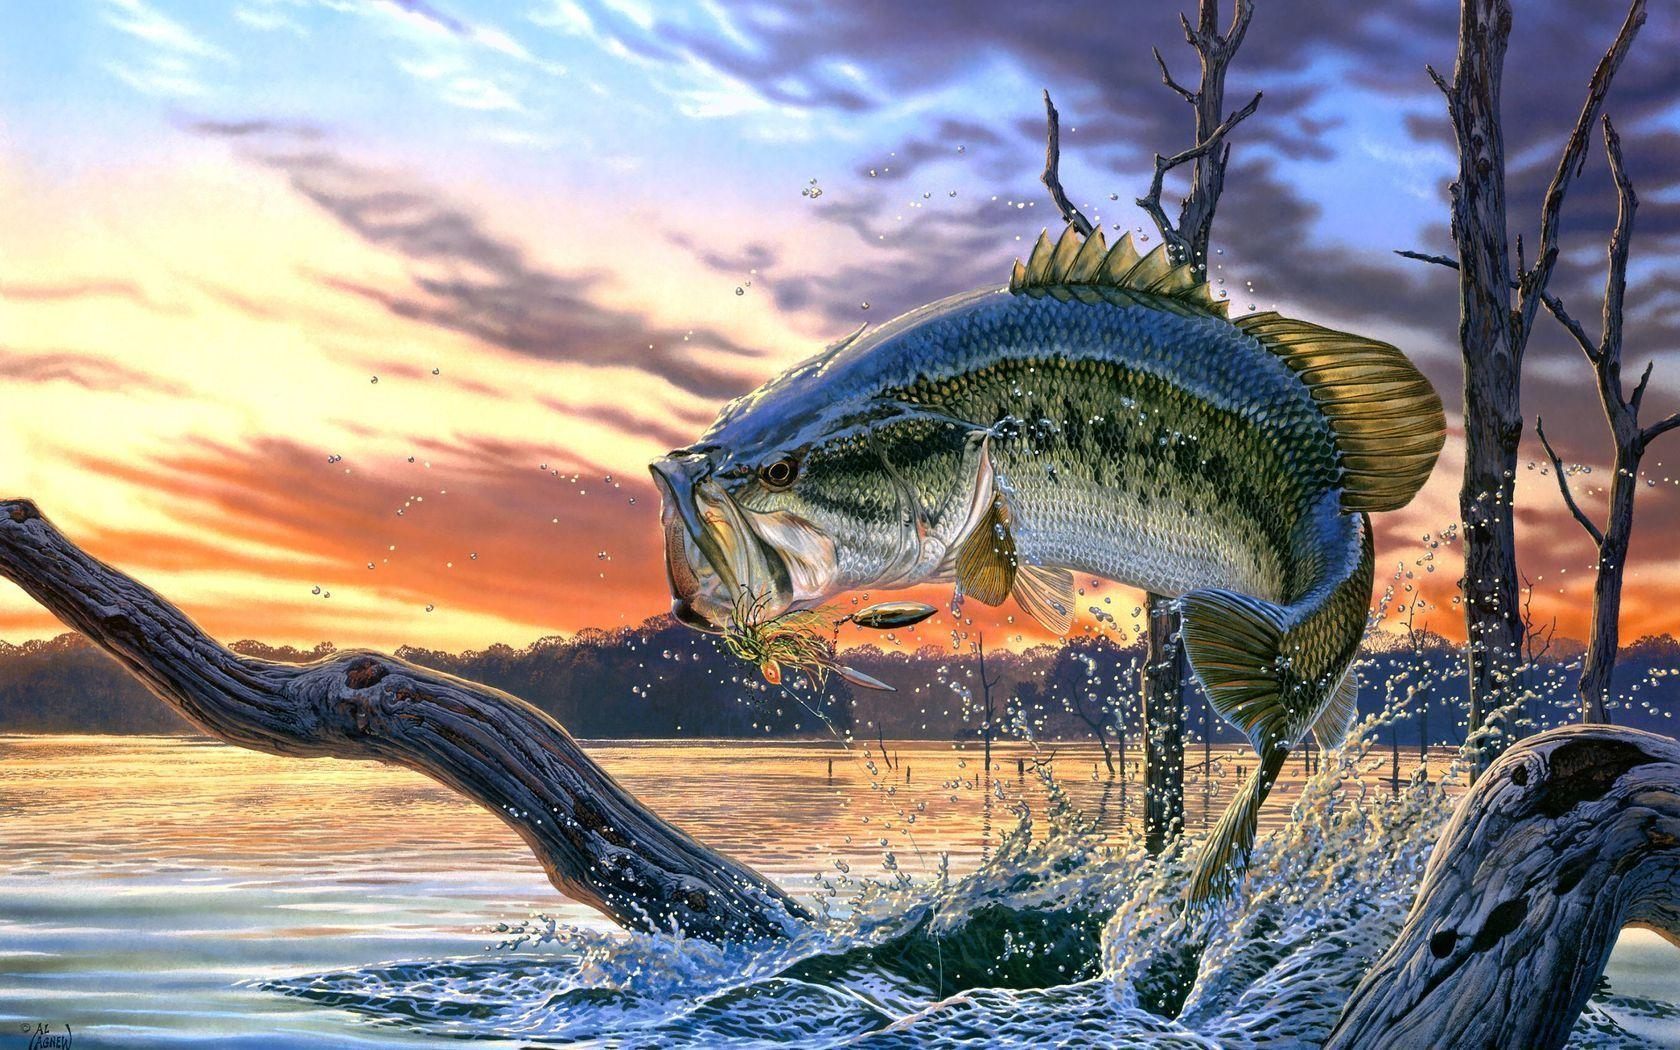 c869fd1d7b044 Bass images of fish largemouth bass fishing wallpaper background jpg  1680x1050 Largemouth bass wallpaper bikini